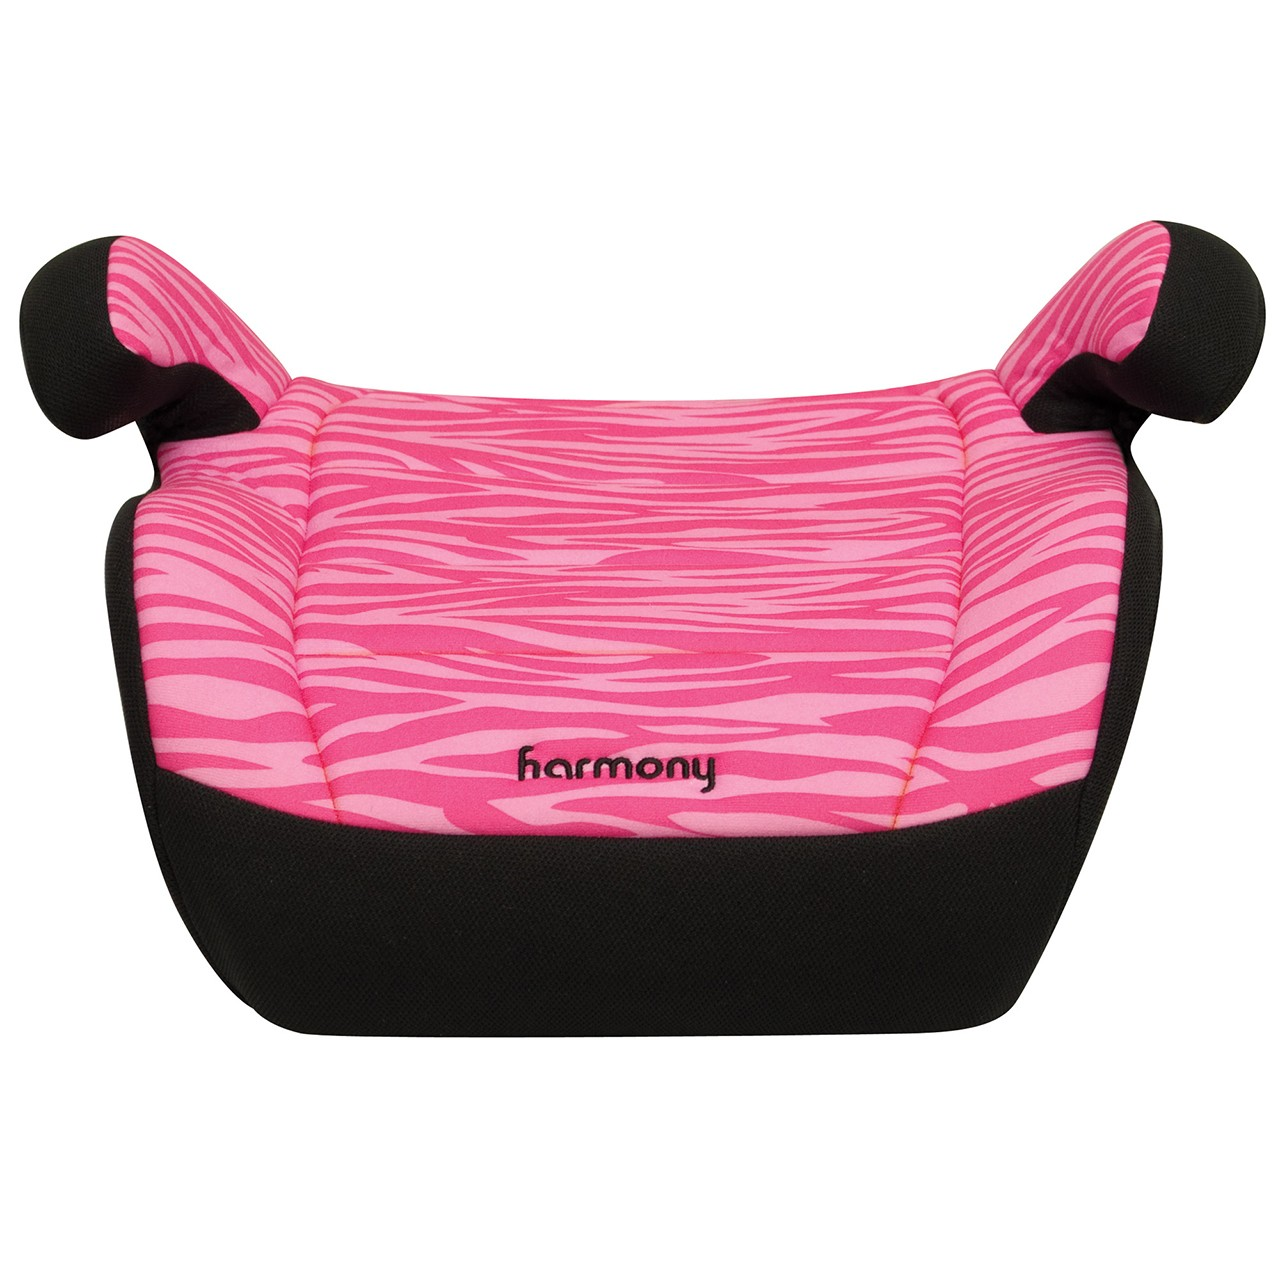 harmony high chair recall ergonomic office reviews youth booster car seat pink zebra no back